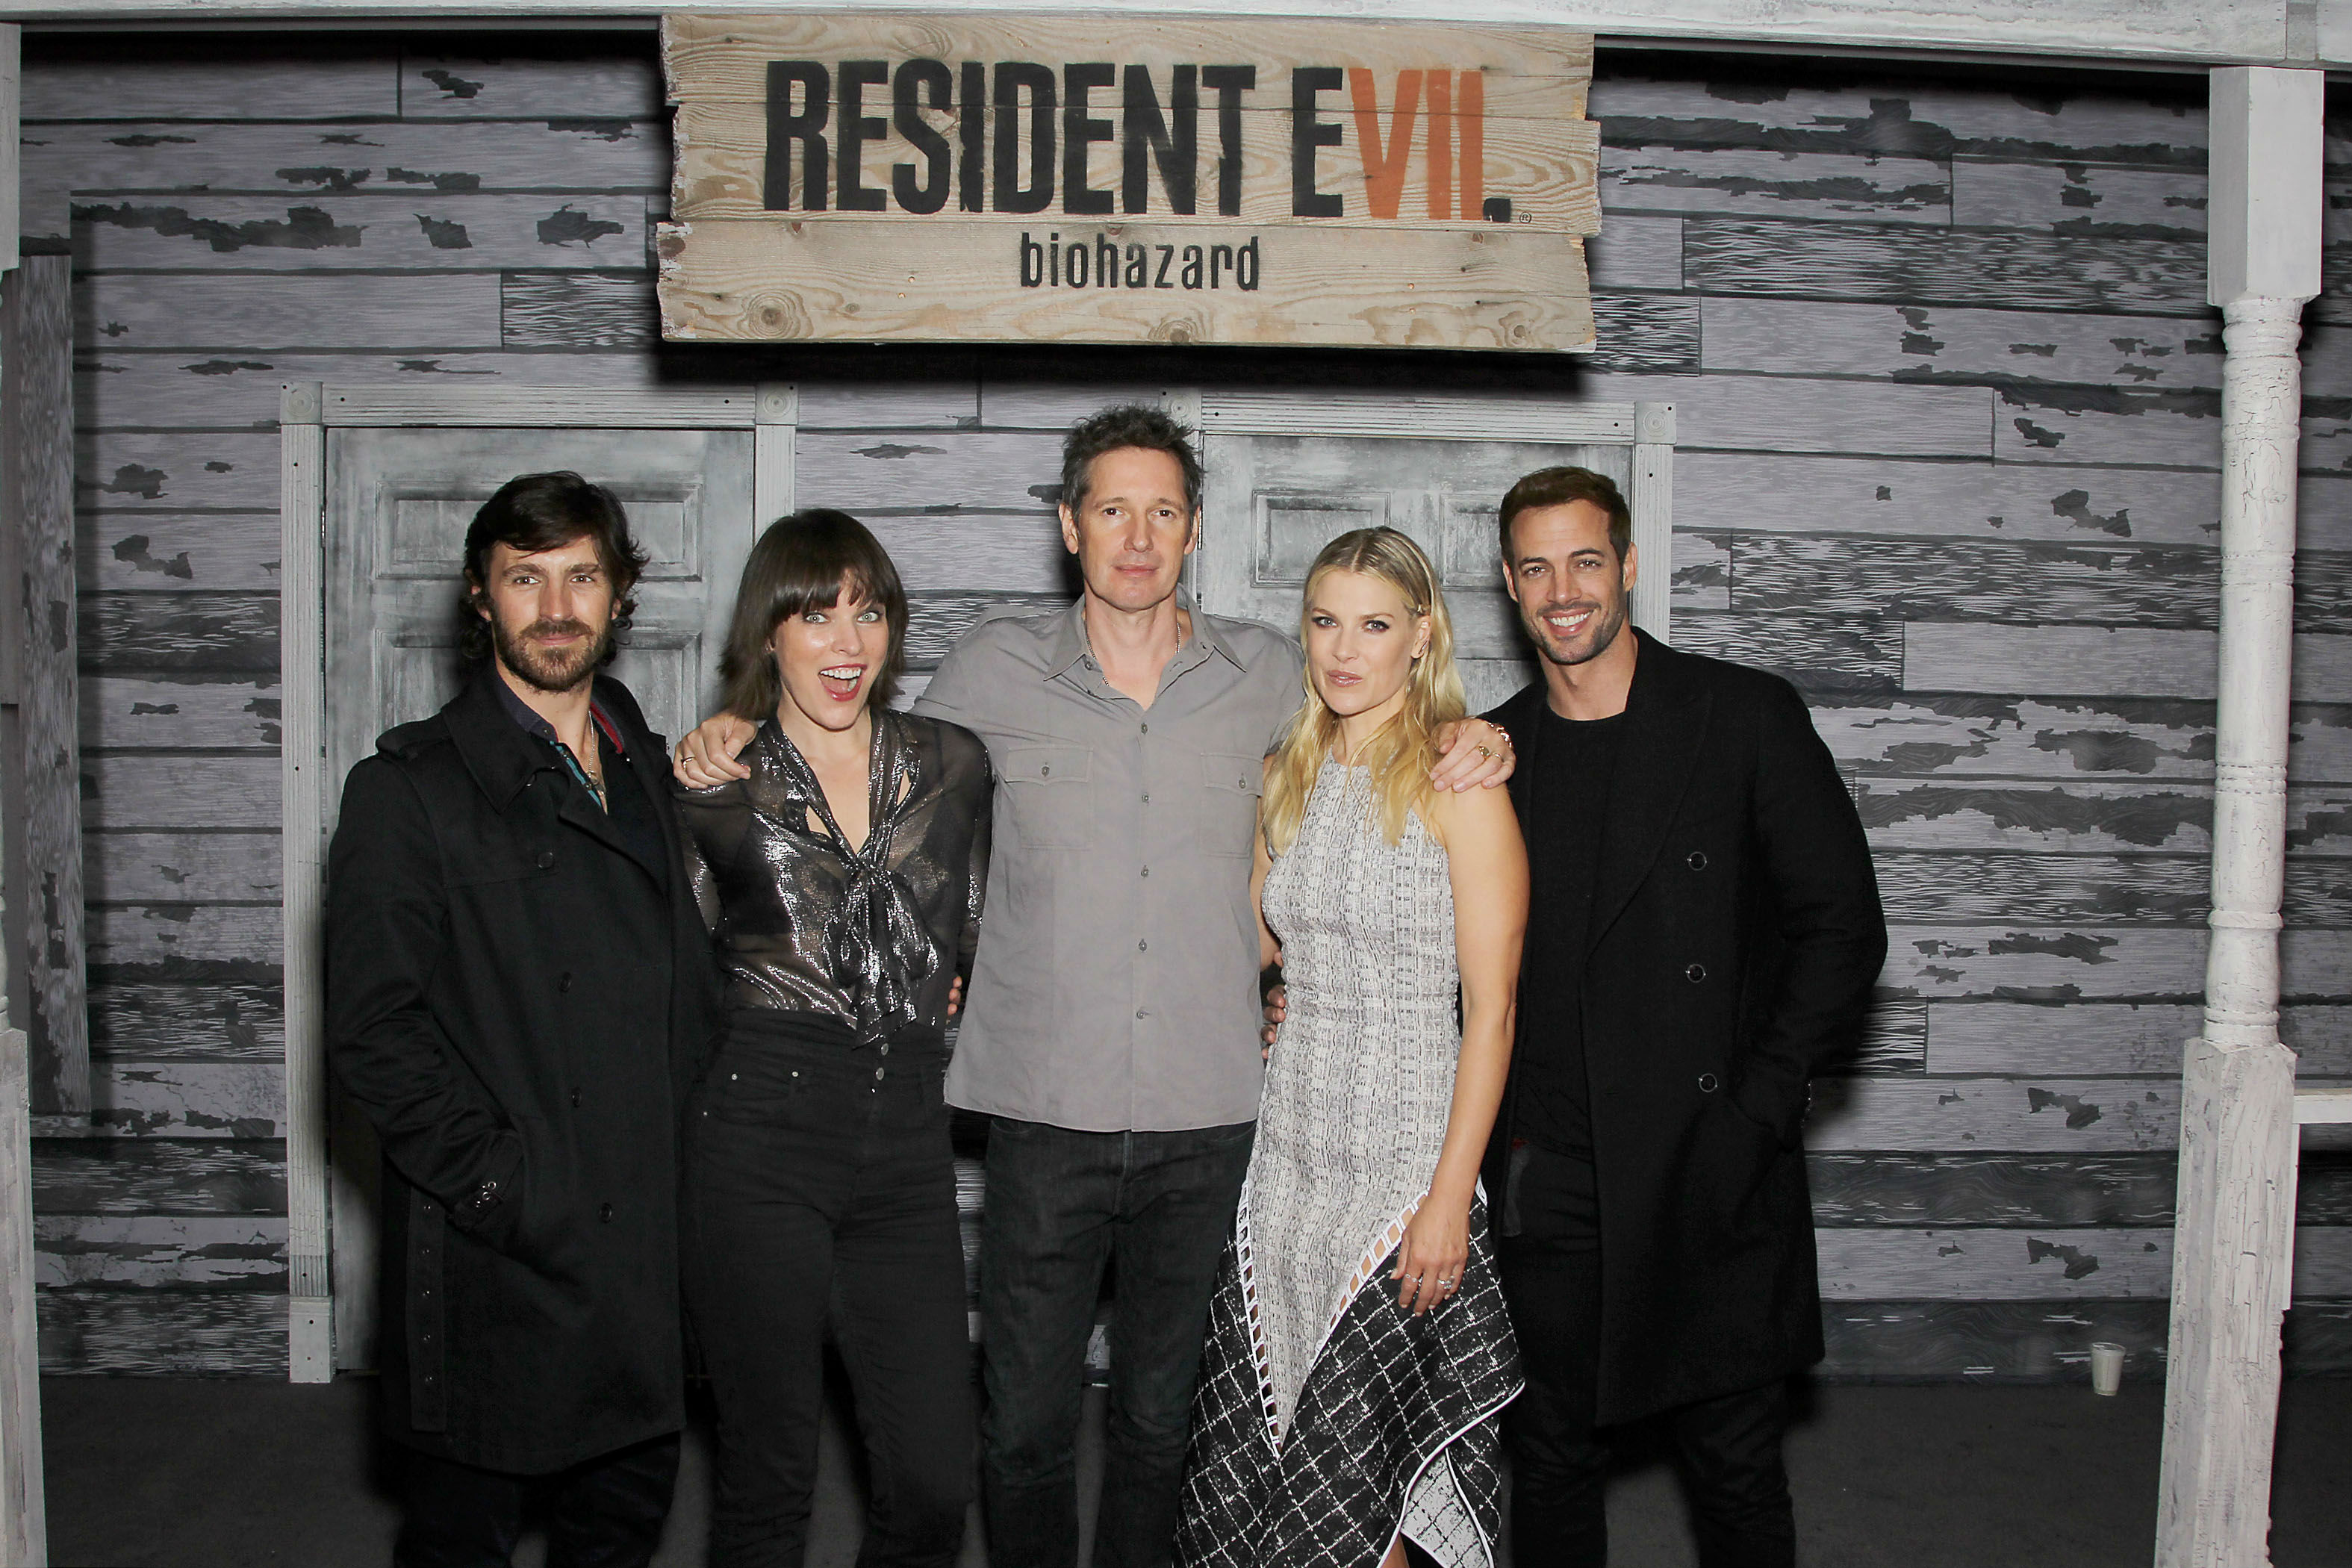 Resident Evil The Final Chapter Cast On Reclaiming: Resident-evil-the-final-chapter-eoin-macken-milla-jovovich